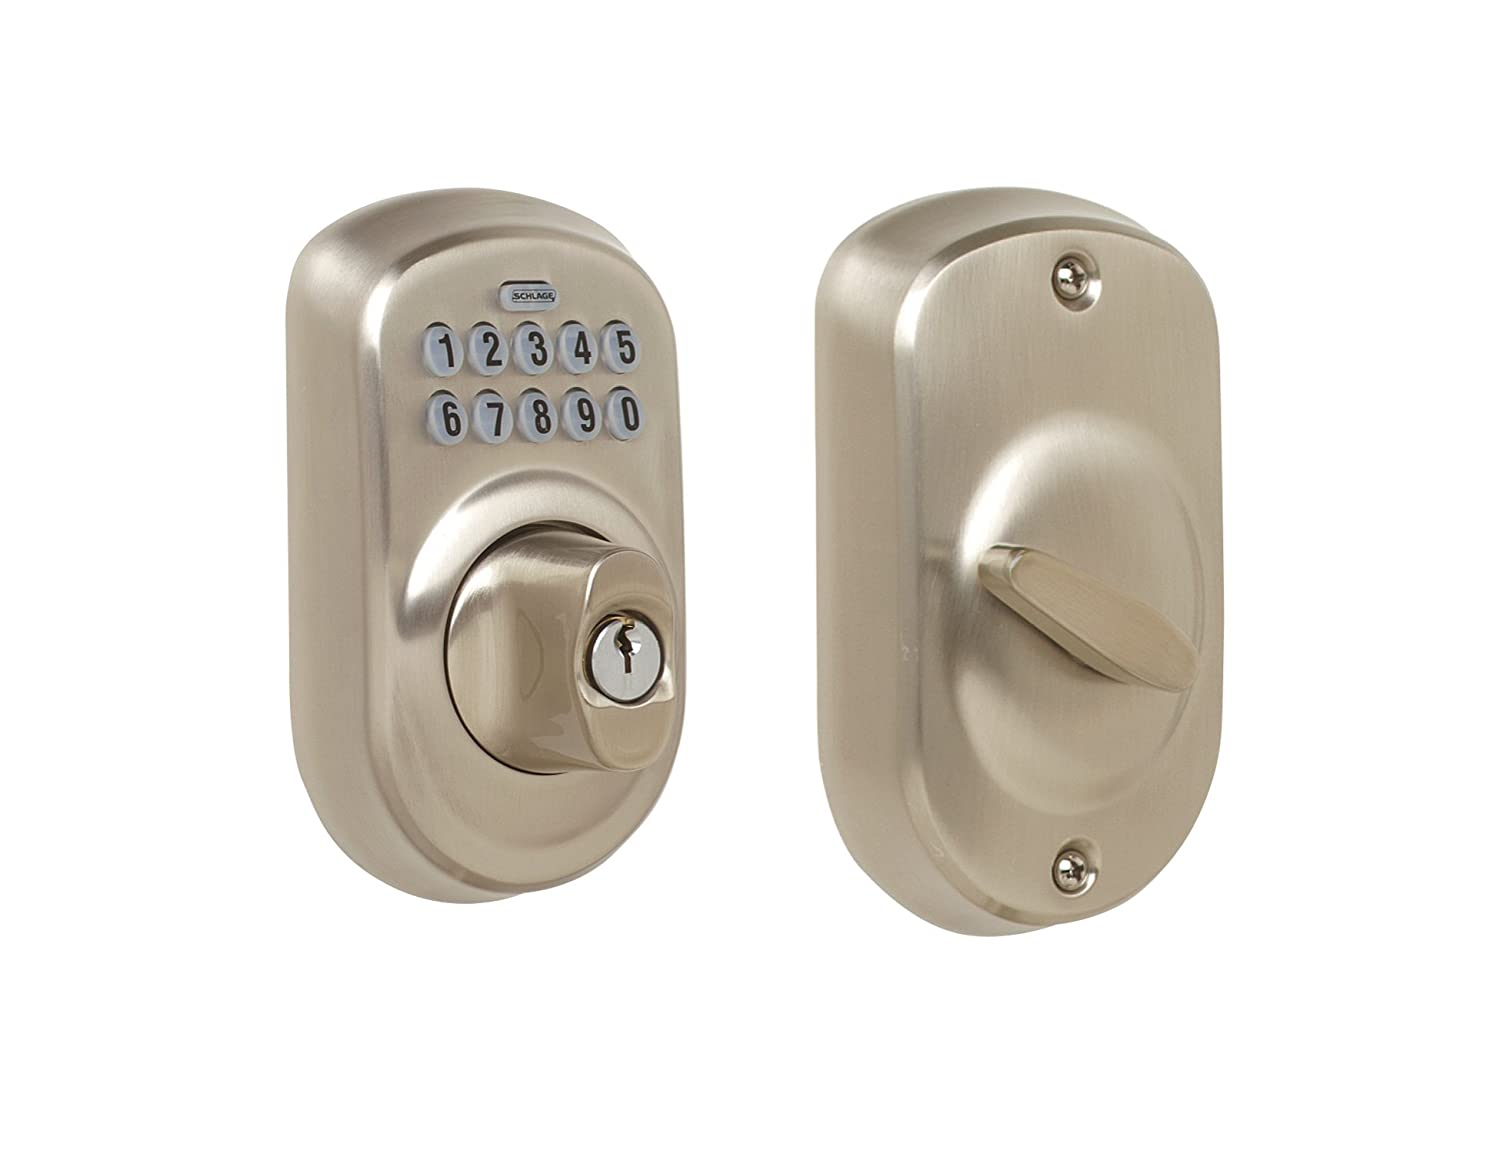 Schlage BE365 PLY 619 Plymouth Keypad Deadbolt Satin Nickel - Door Dead Bolts - Amazon.com